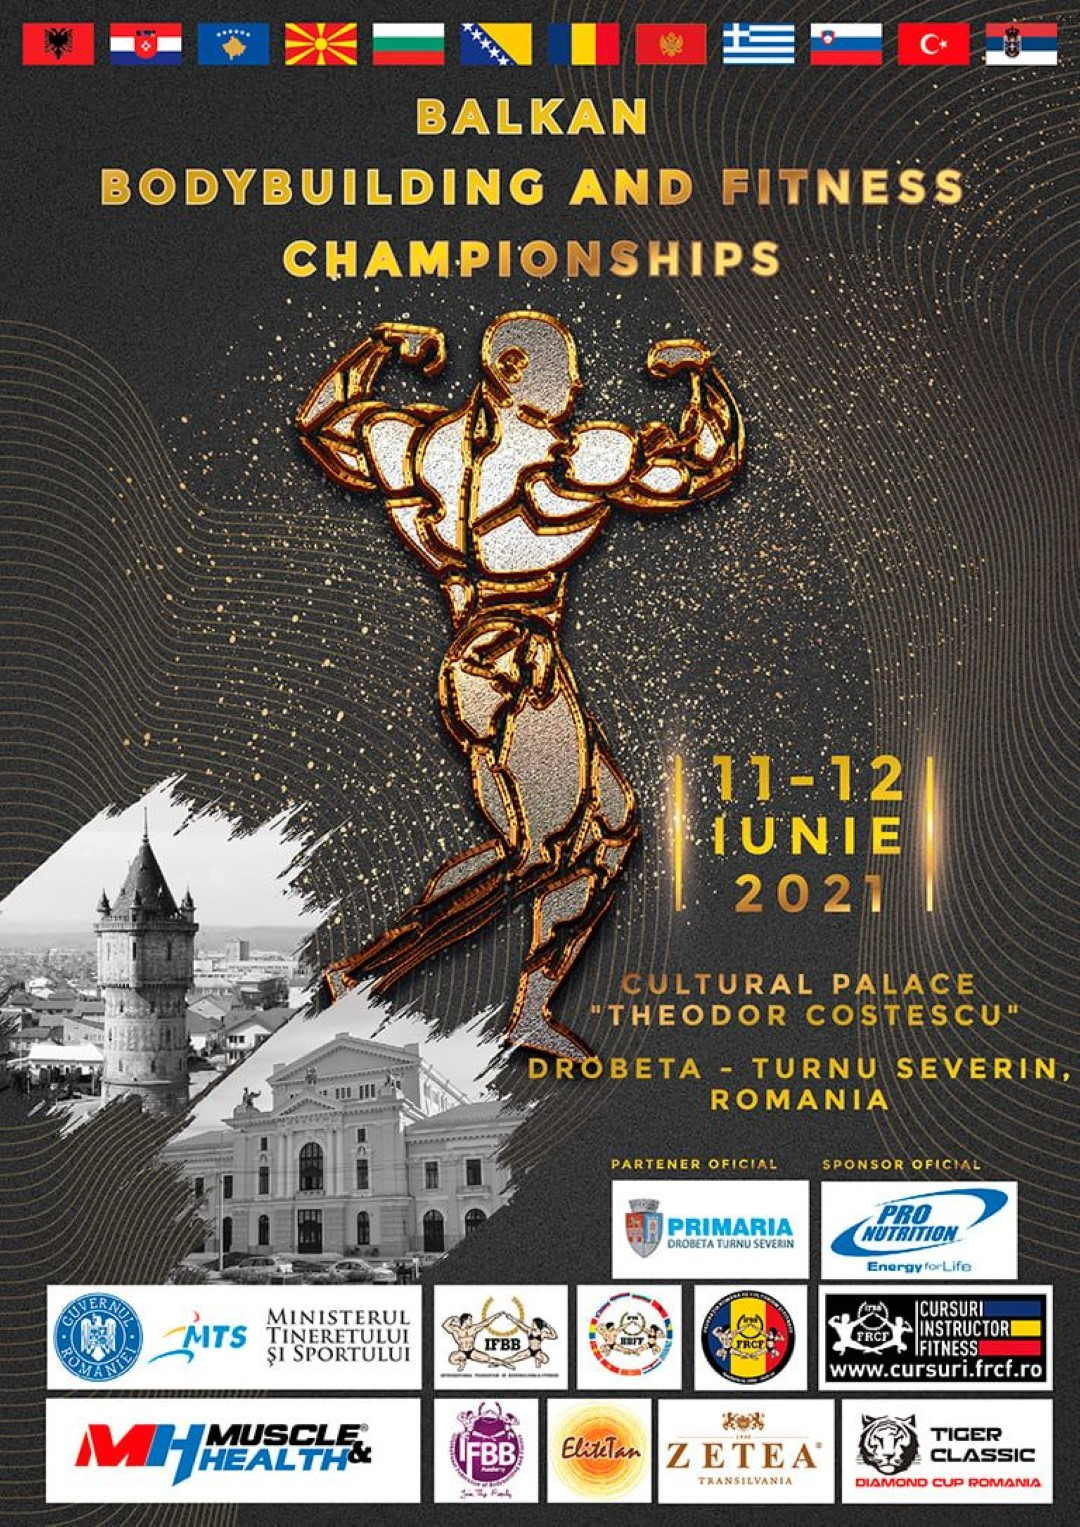 BALKAN BODYBUILDING AND FITNESS CHAMPIONSHIPS